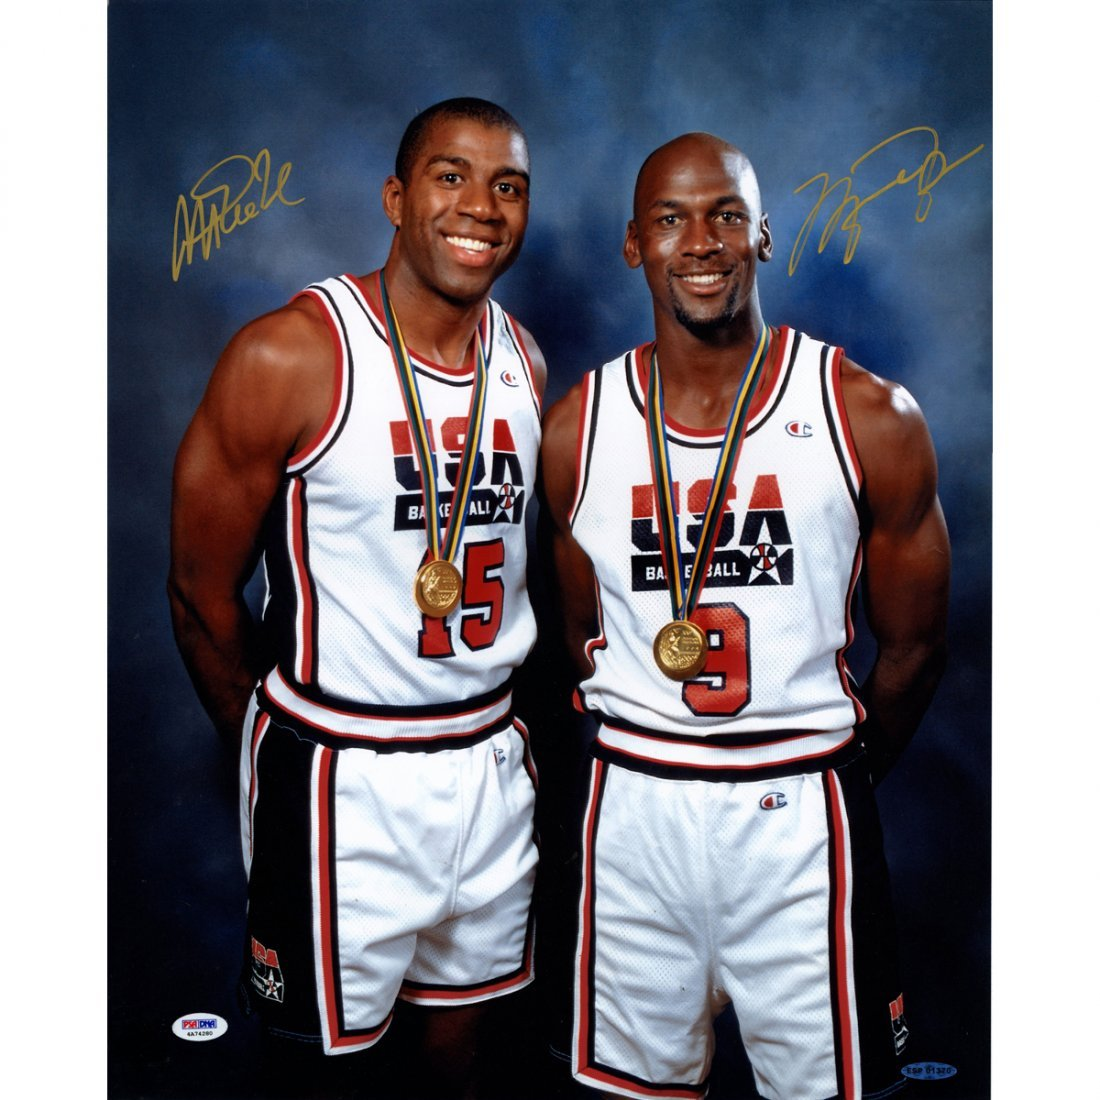 Michael Jordan / Magic Johnson Dual Signed Standing wit